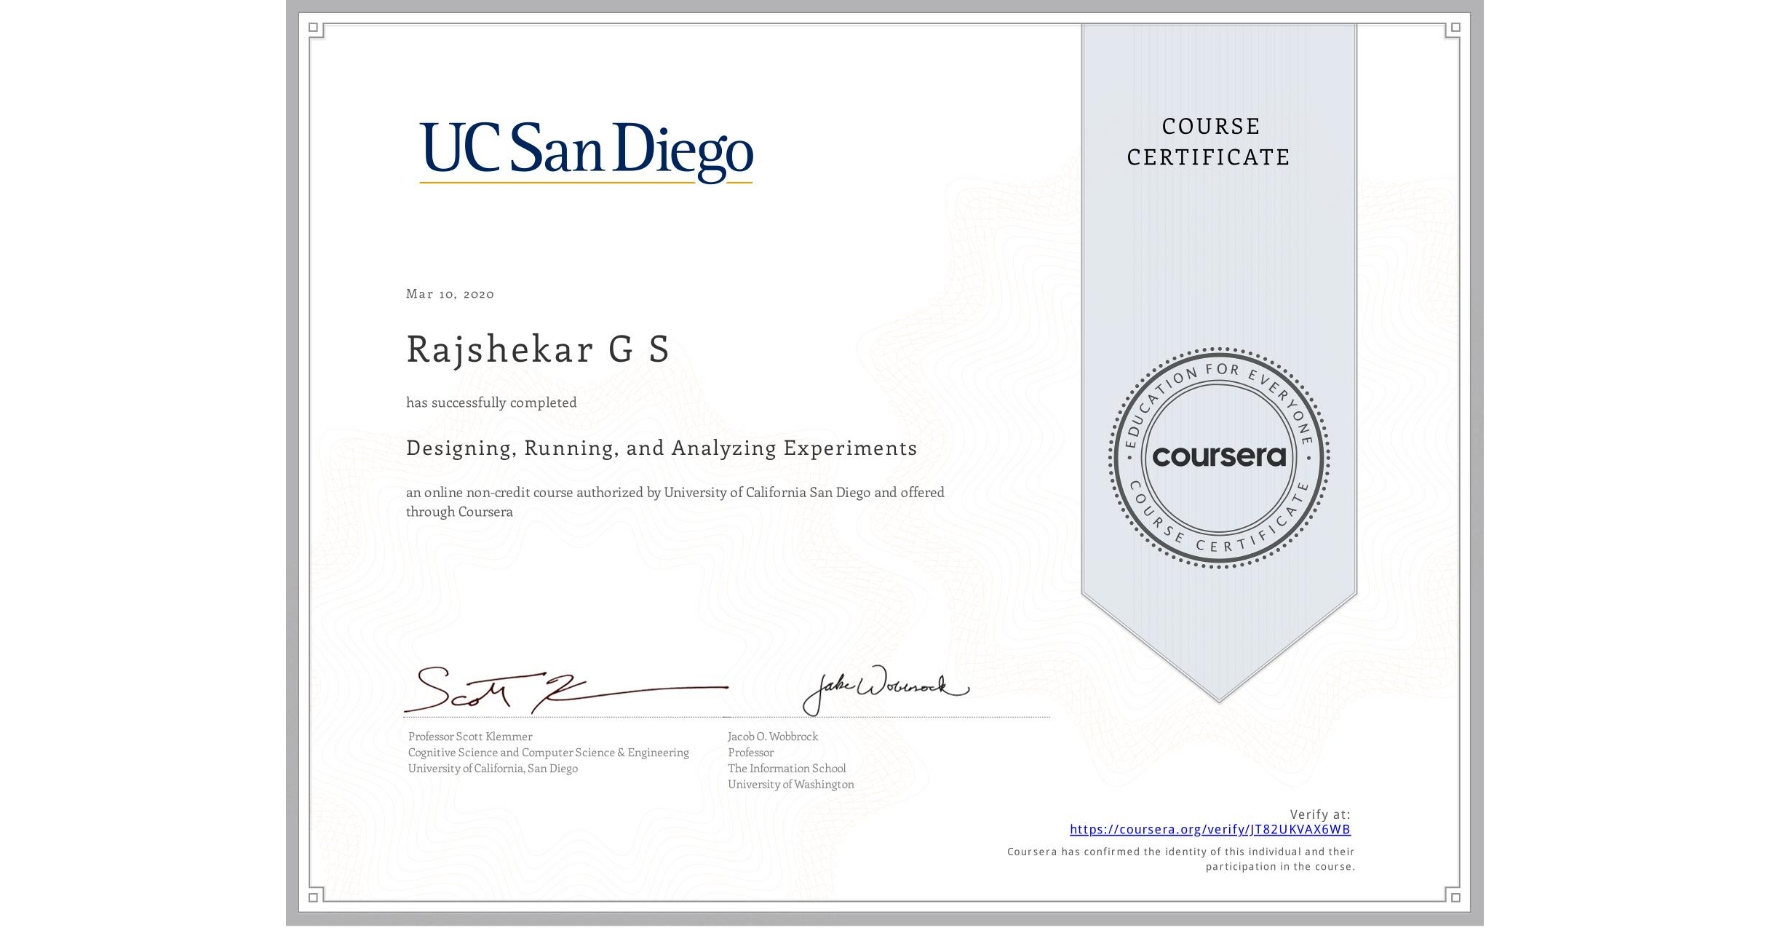 View certificate for Rajshekar G S, Designing, Running, and Analyzing Experiments, an online non-credit course authorized by University of California San Diego and offered through Coursera